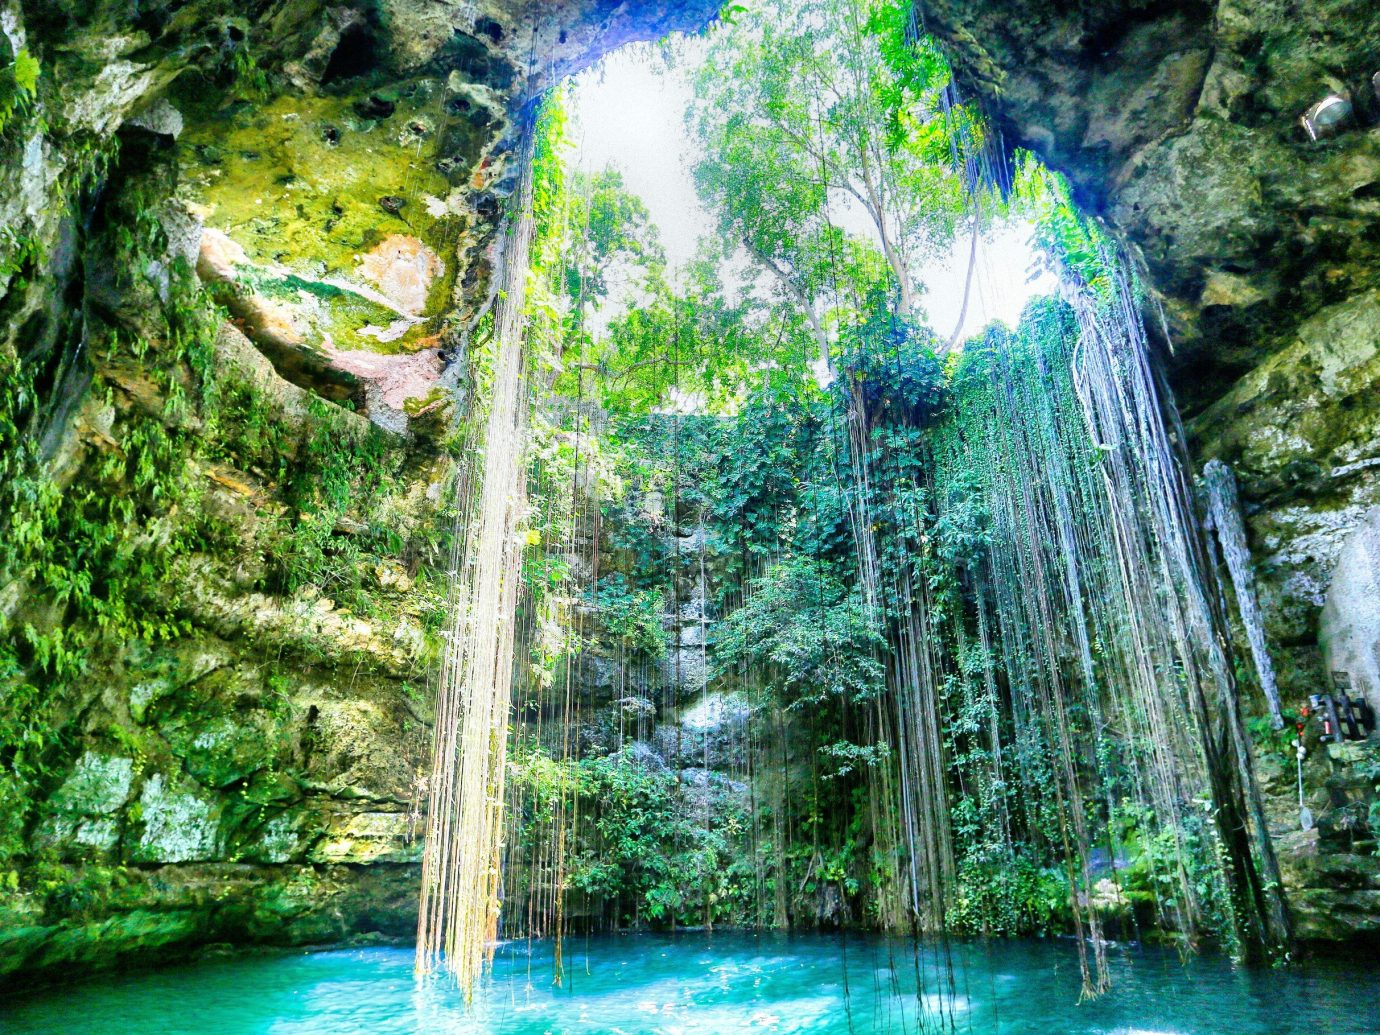 Outdoors + Adventure tree water habitat outdoor Waterfall Nature green body of water natural environment River Forest rainforest botany water feature Jungle reflection woodland sunlight tropics surrounded